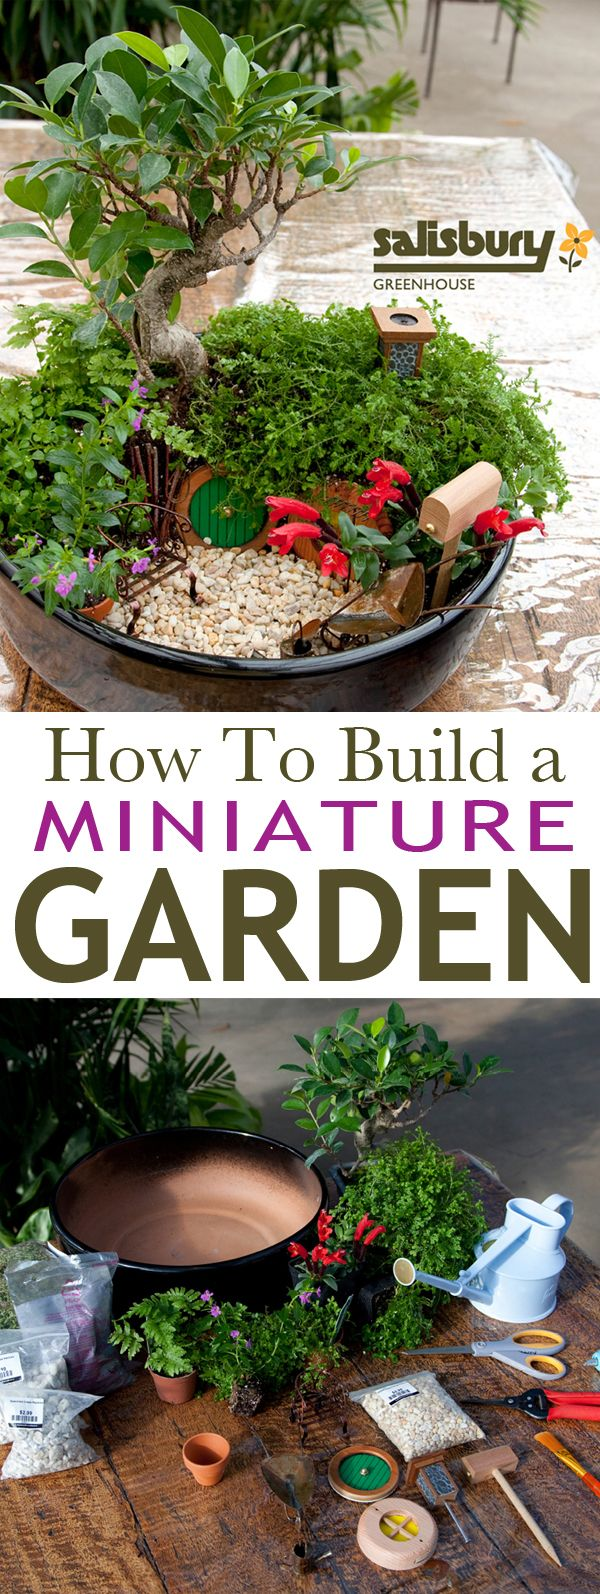 How To Build a #MiniatureGarden with Salisbury Greenhouse. #FairyGardening and a few other nice tutorials